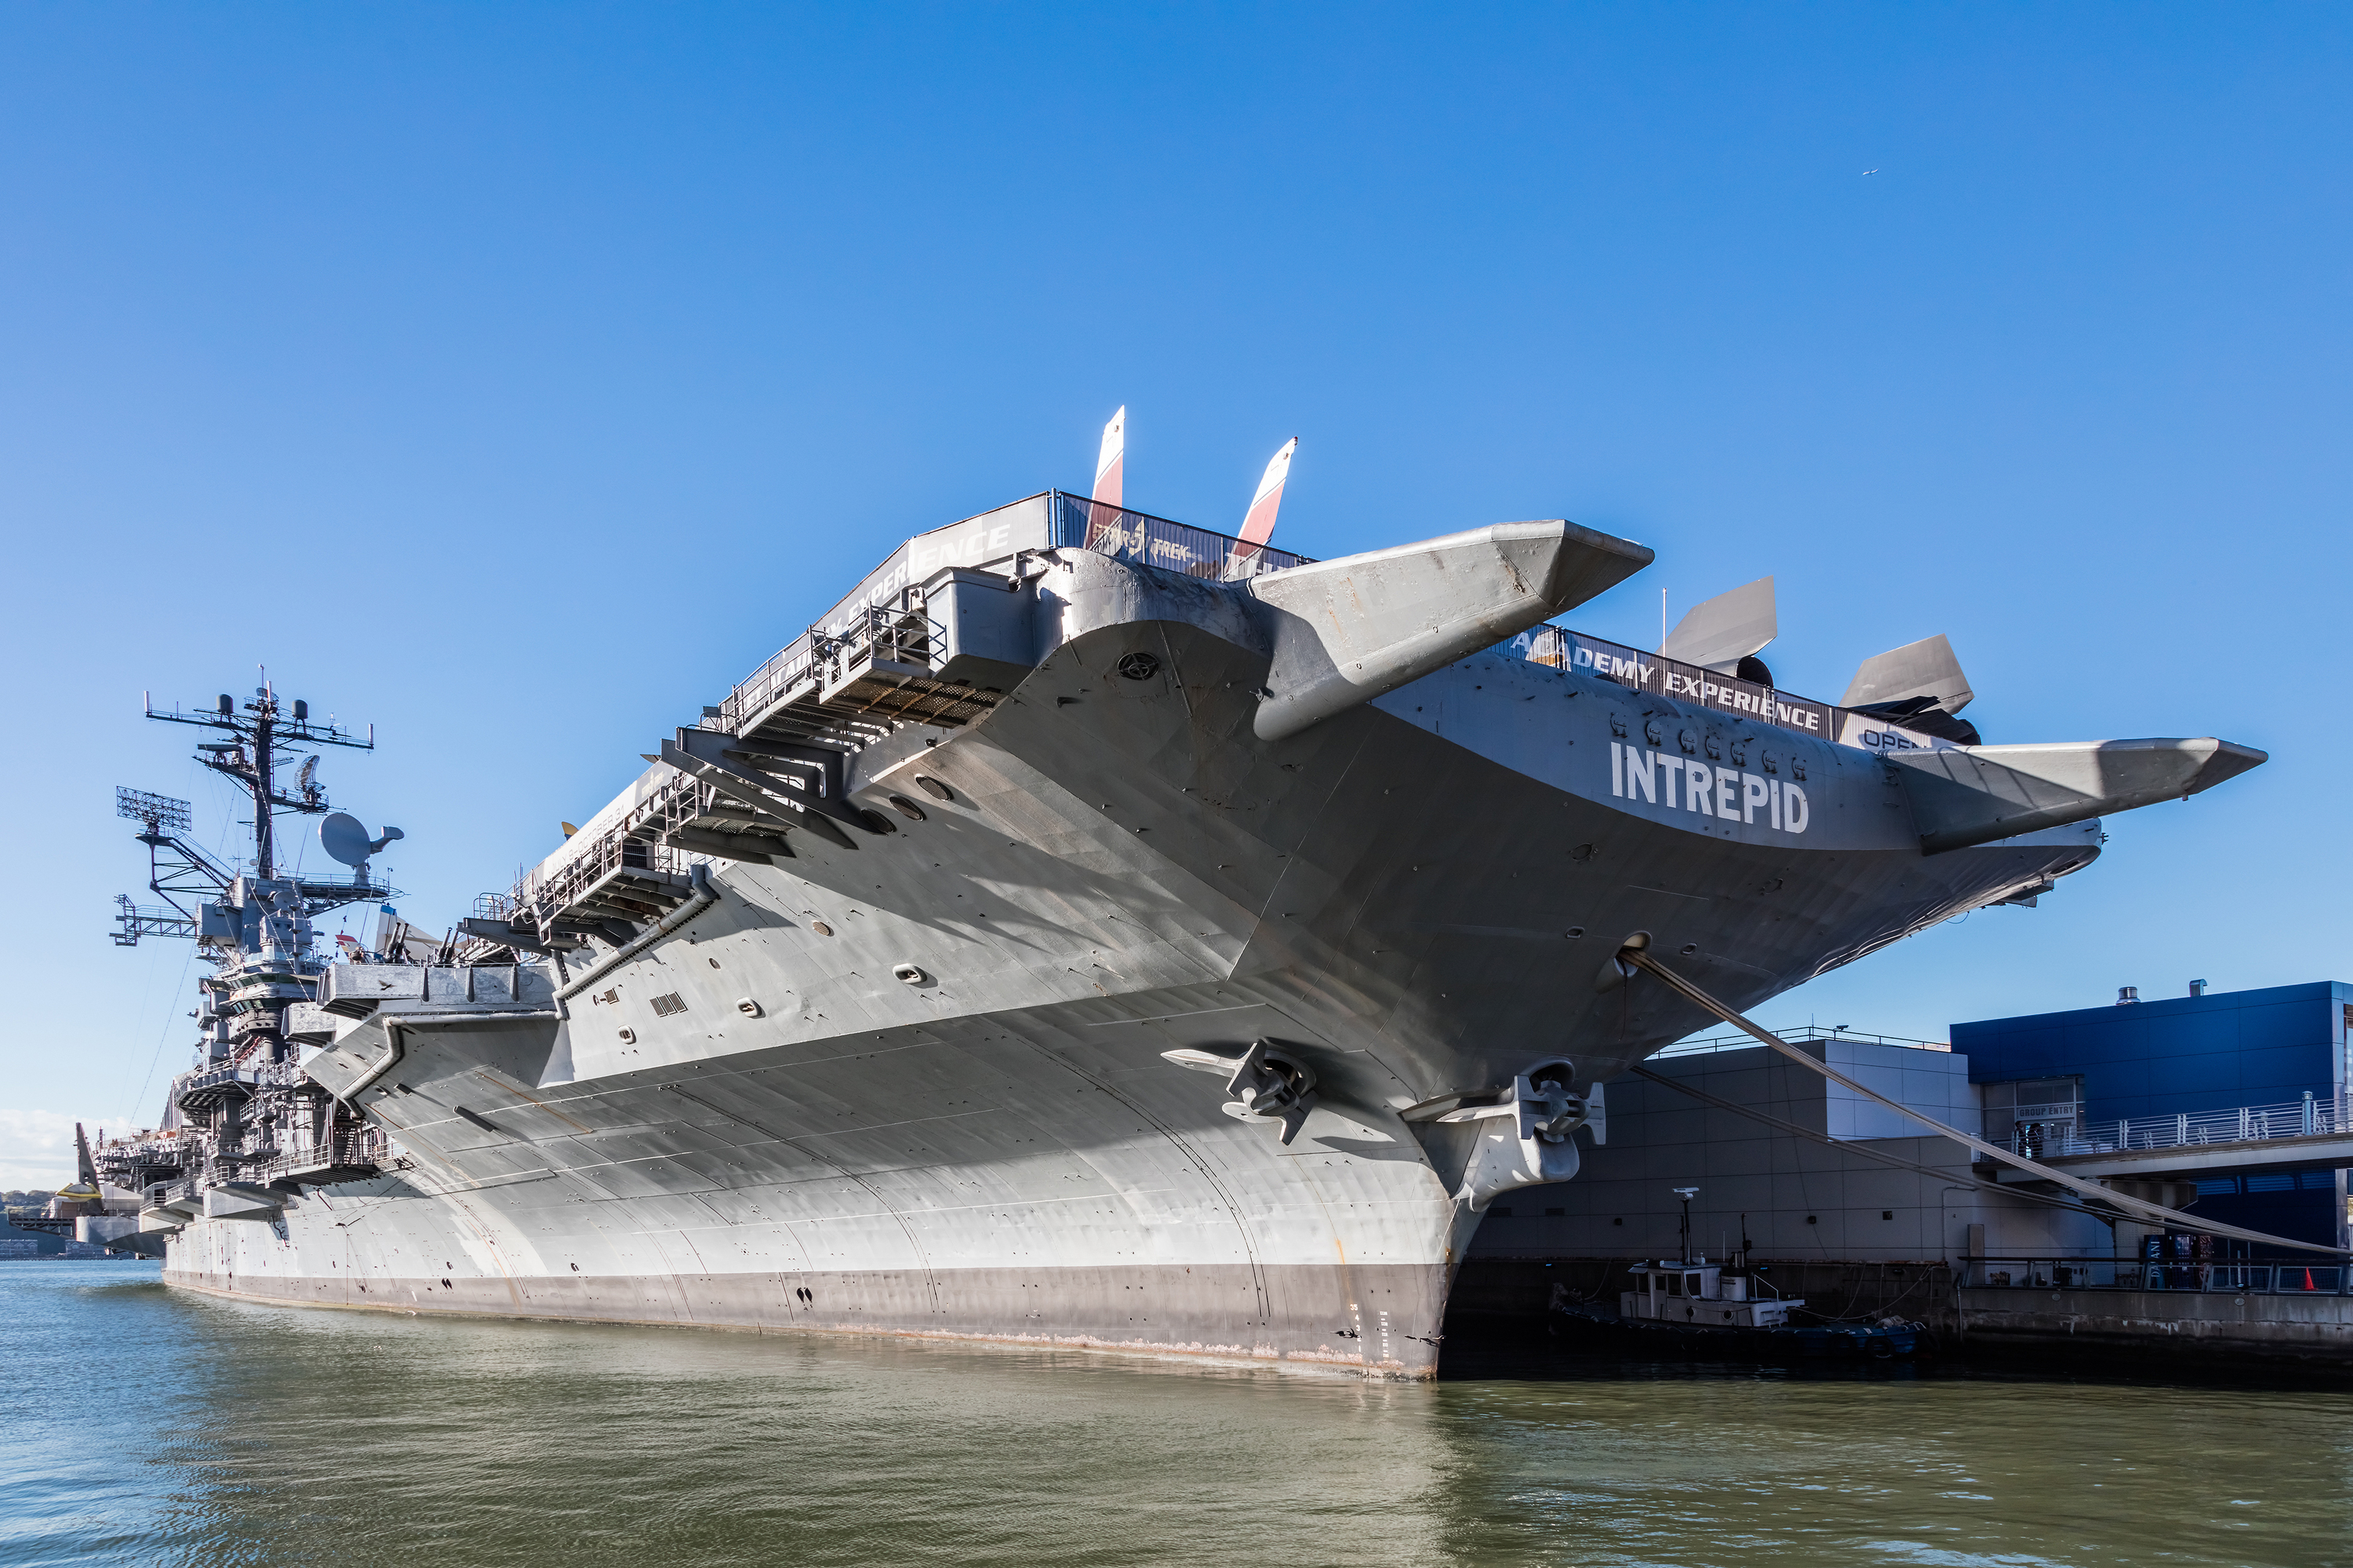 Intrepid Sea, Air & Space Museum will offer free Friday admission starting this spring